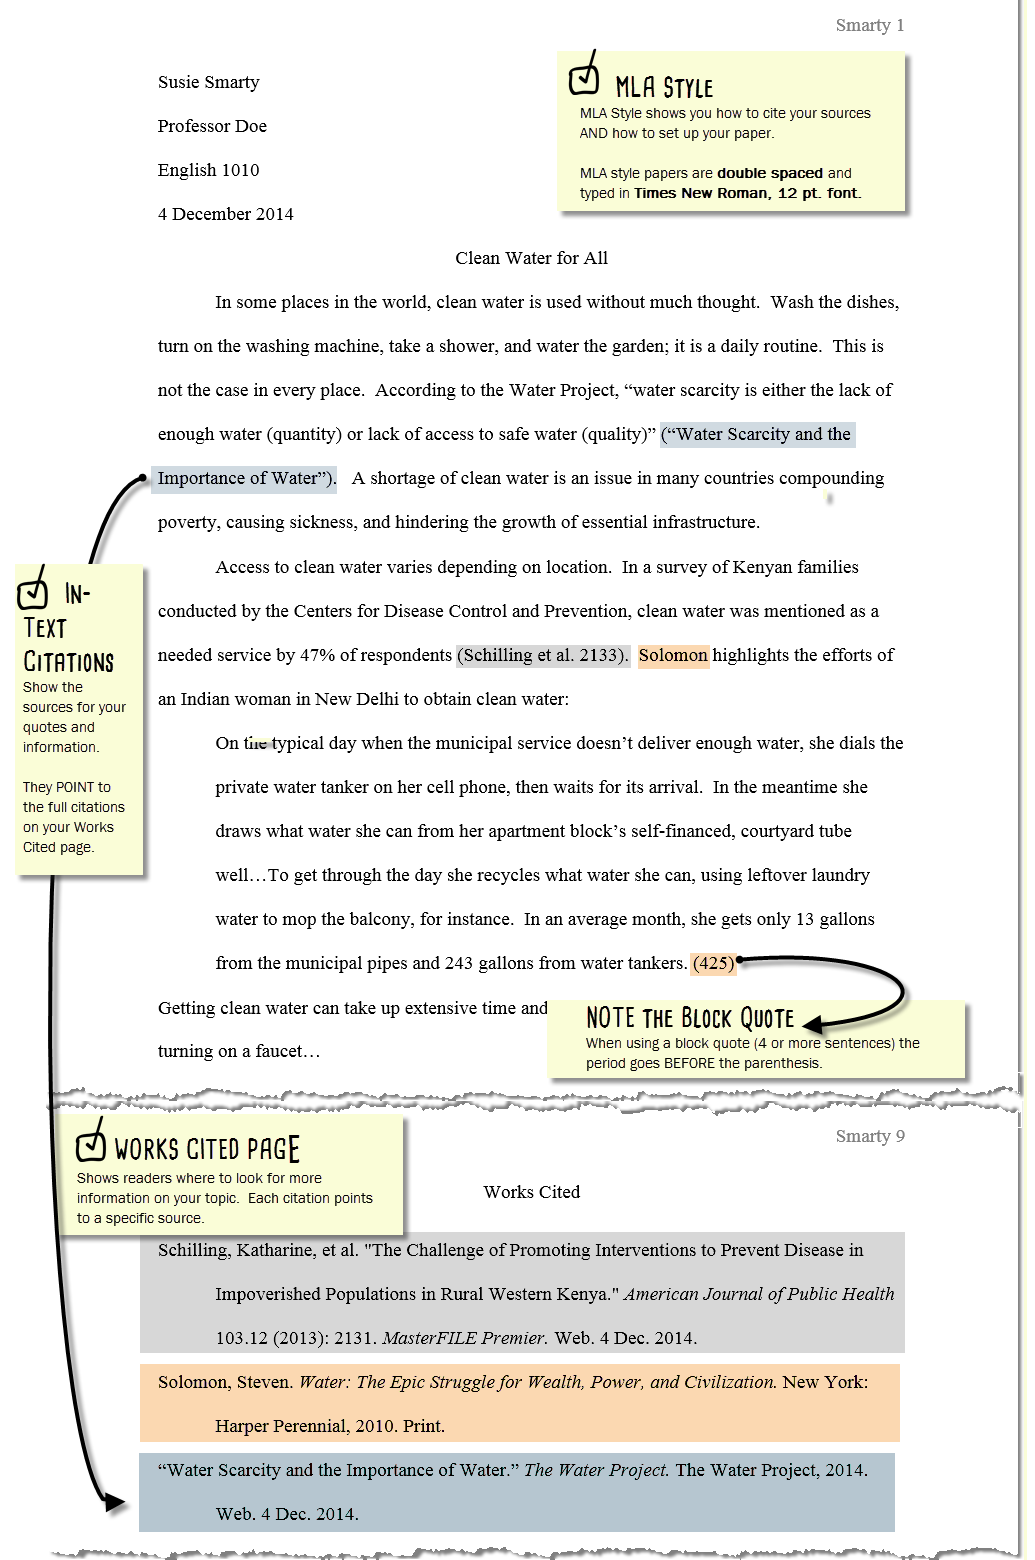 006 How To Cite Quotes In Research Paper Mla Shocking Full